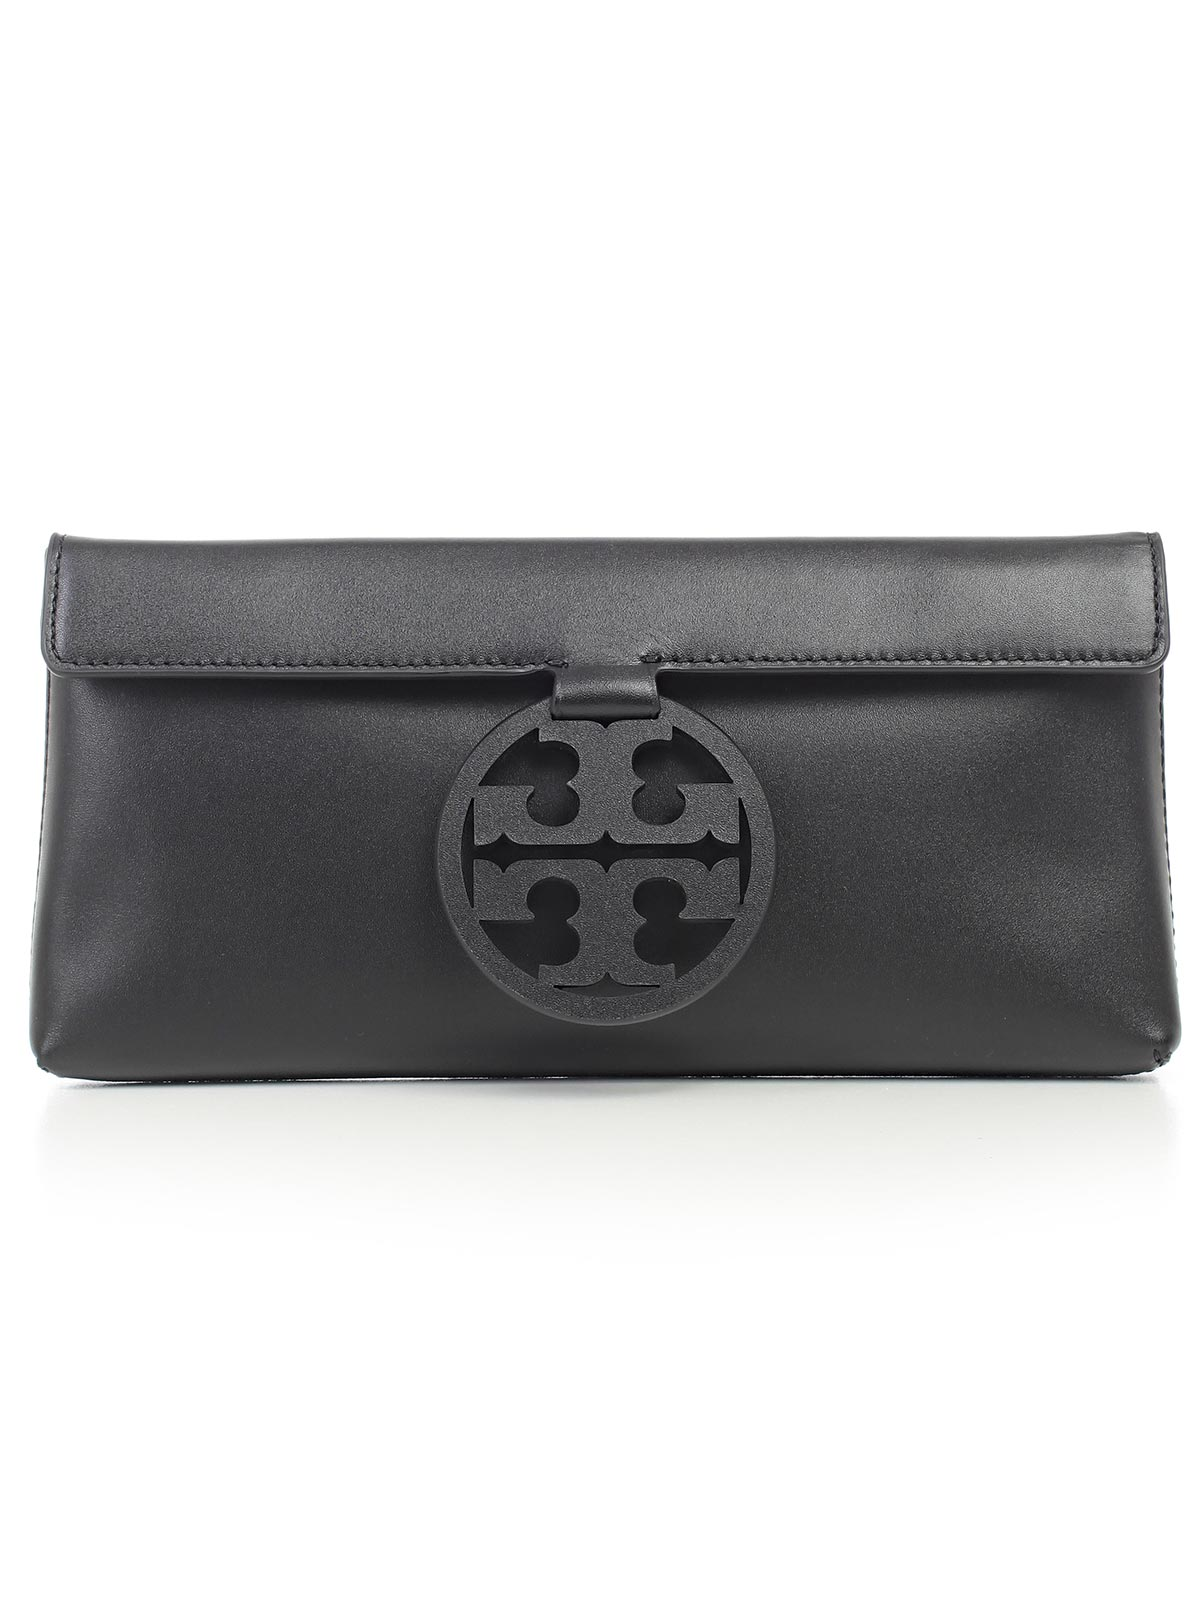 Picture of Tory Burch Clutches